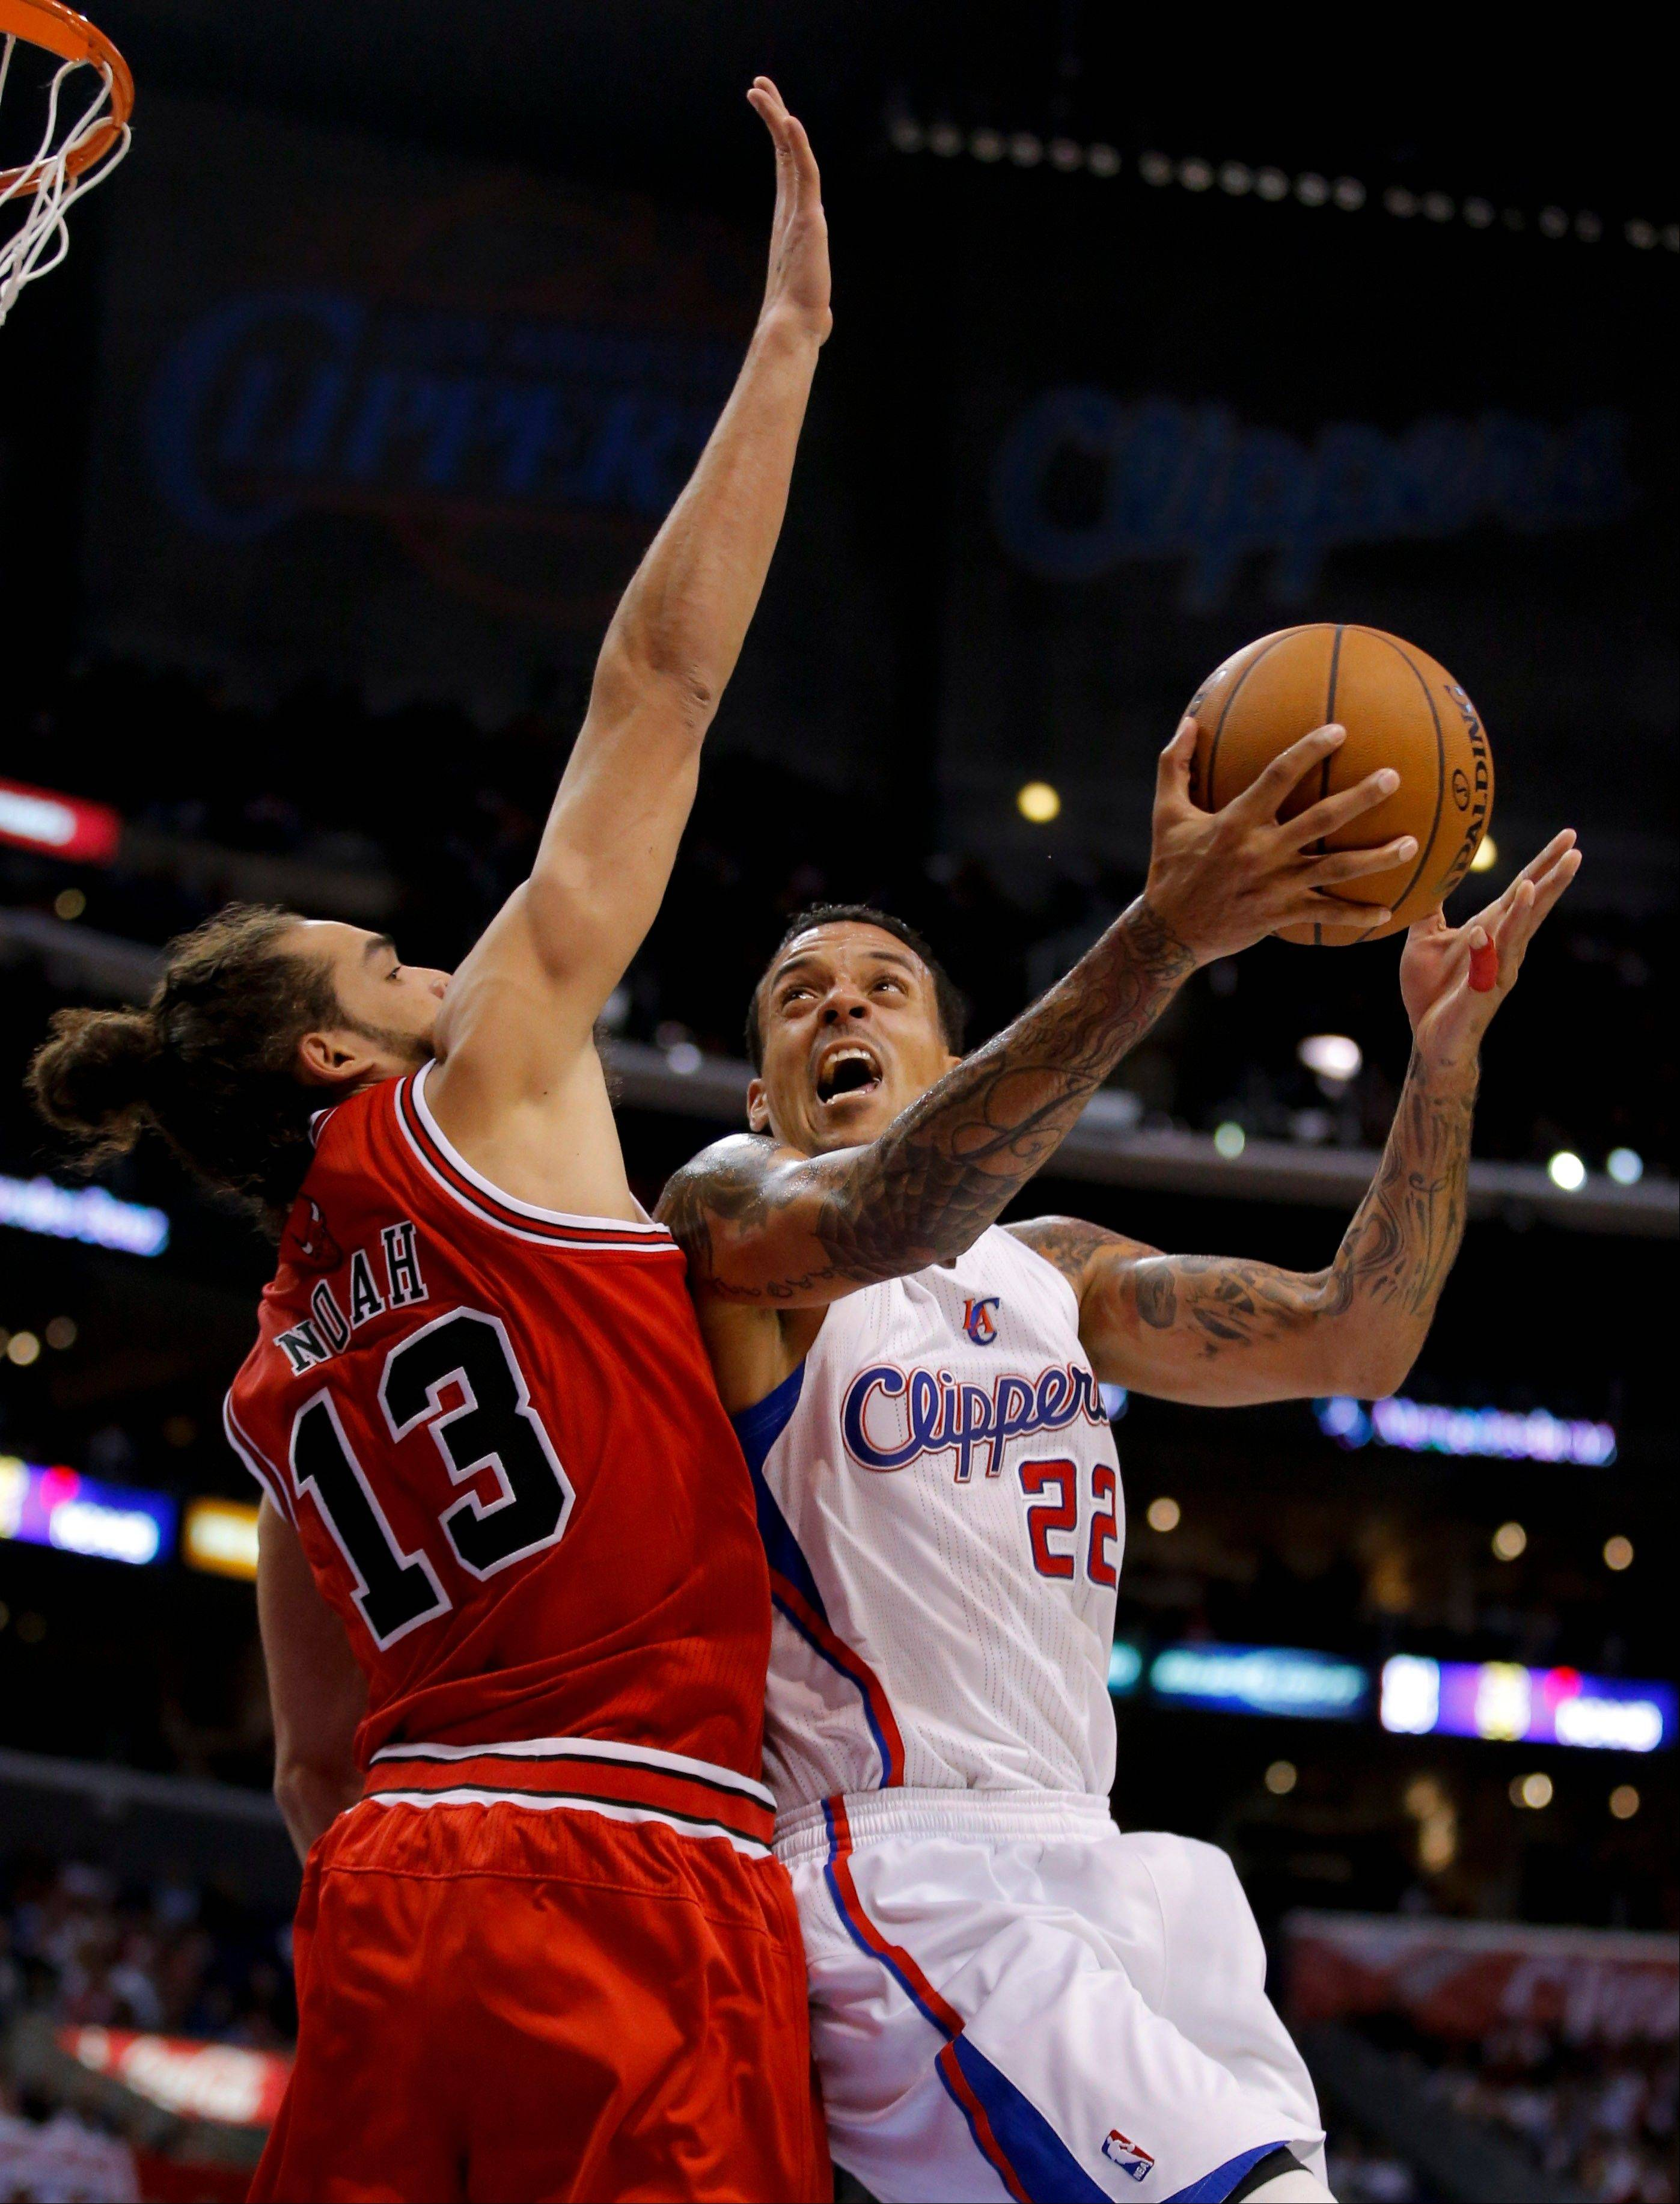 Los Angeles Clippers' Matt Barnes, right, is defended by Chicago Bulls' Joakim Noah in the first half of an NBA basketball game in Los Angeles, Saturday, Nov. 17, 2012.